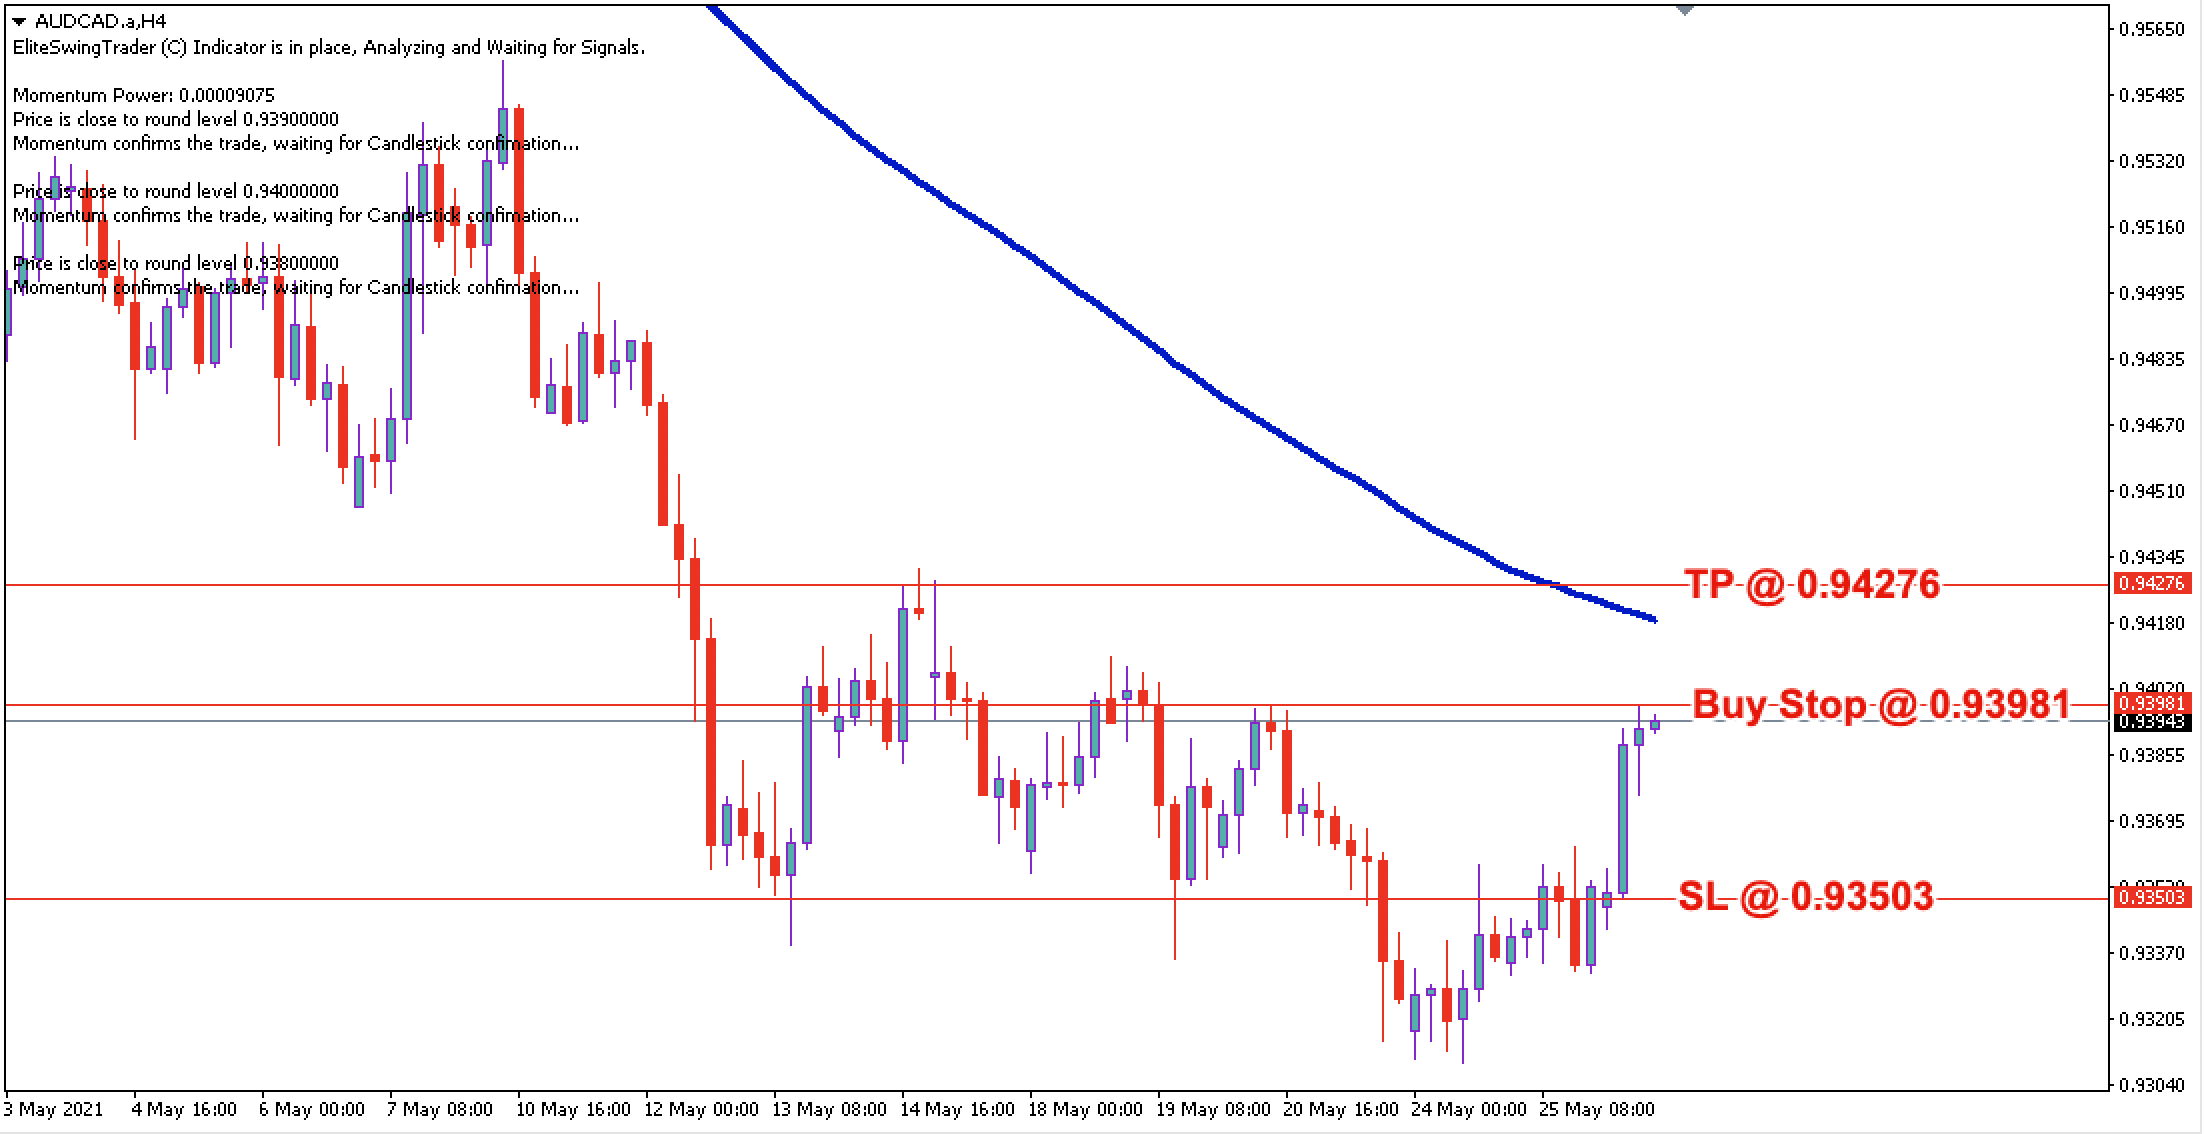 AUD/CAD Daily Price Forecast – 26th May 2021